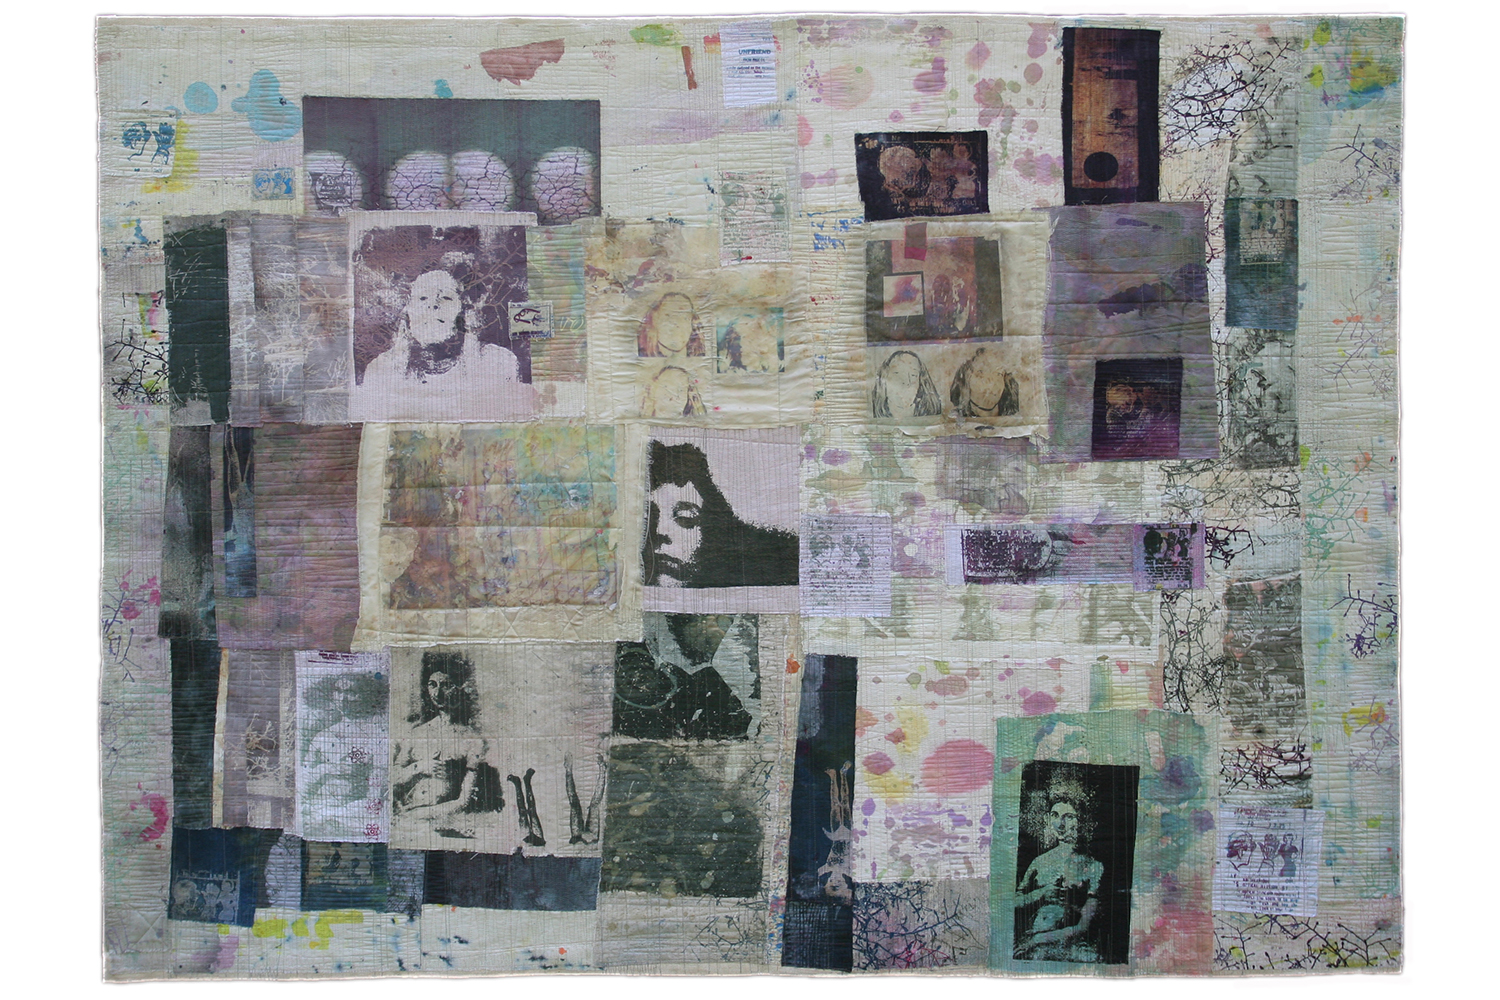 WHAT SHE SAW 44 × 59